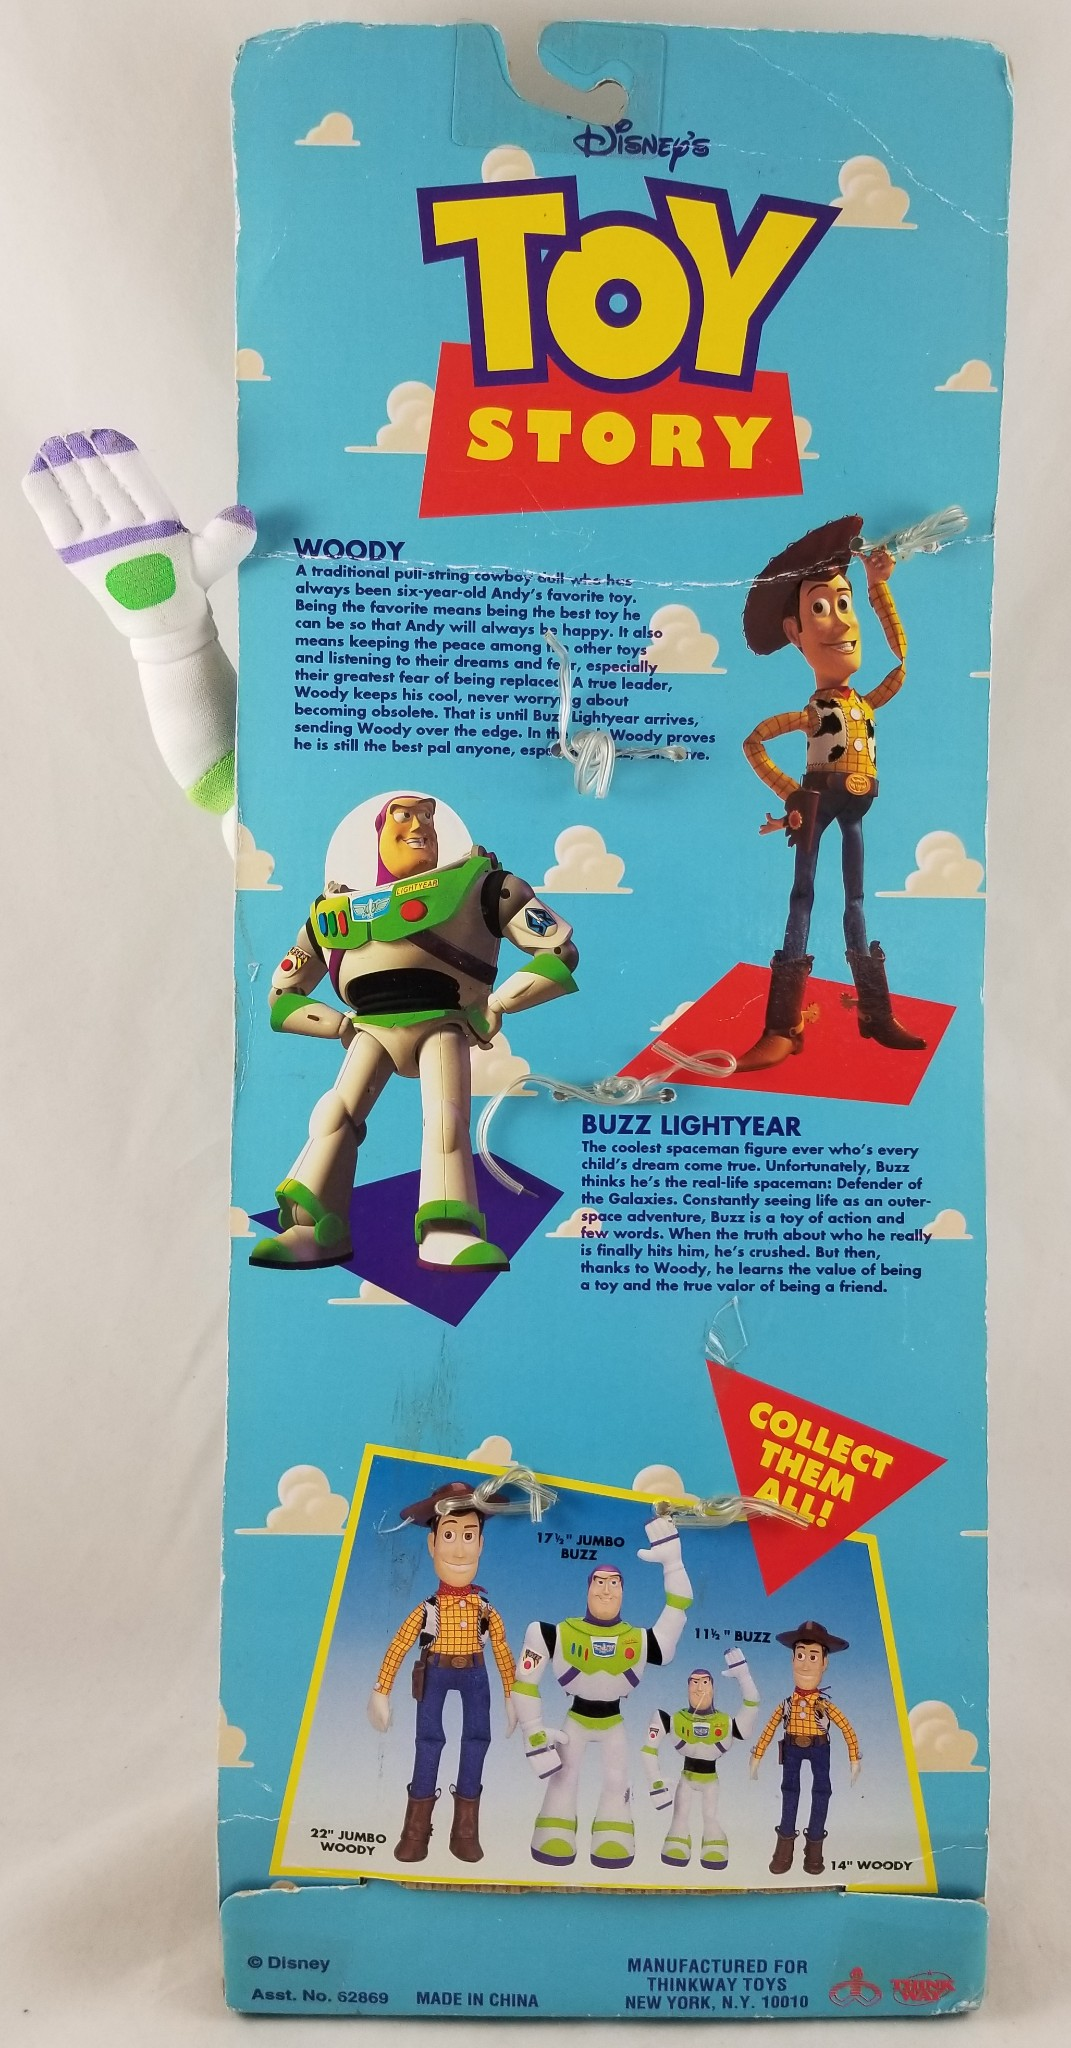 Toy Story Toys Vintage Details About Vintage Original Disney Toy Story Adventure Buddy Buzz Lightyear 11 5